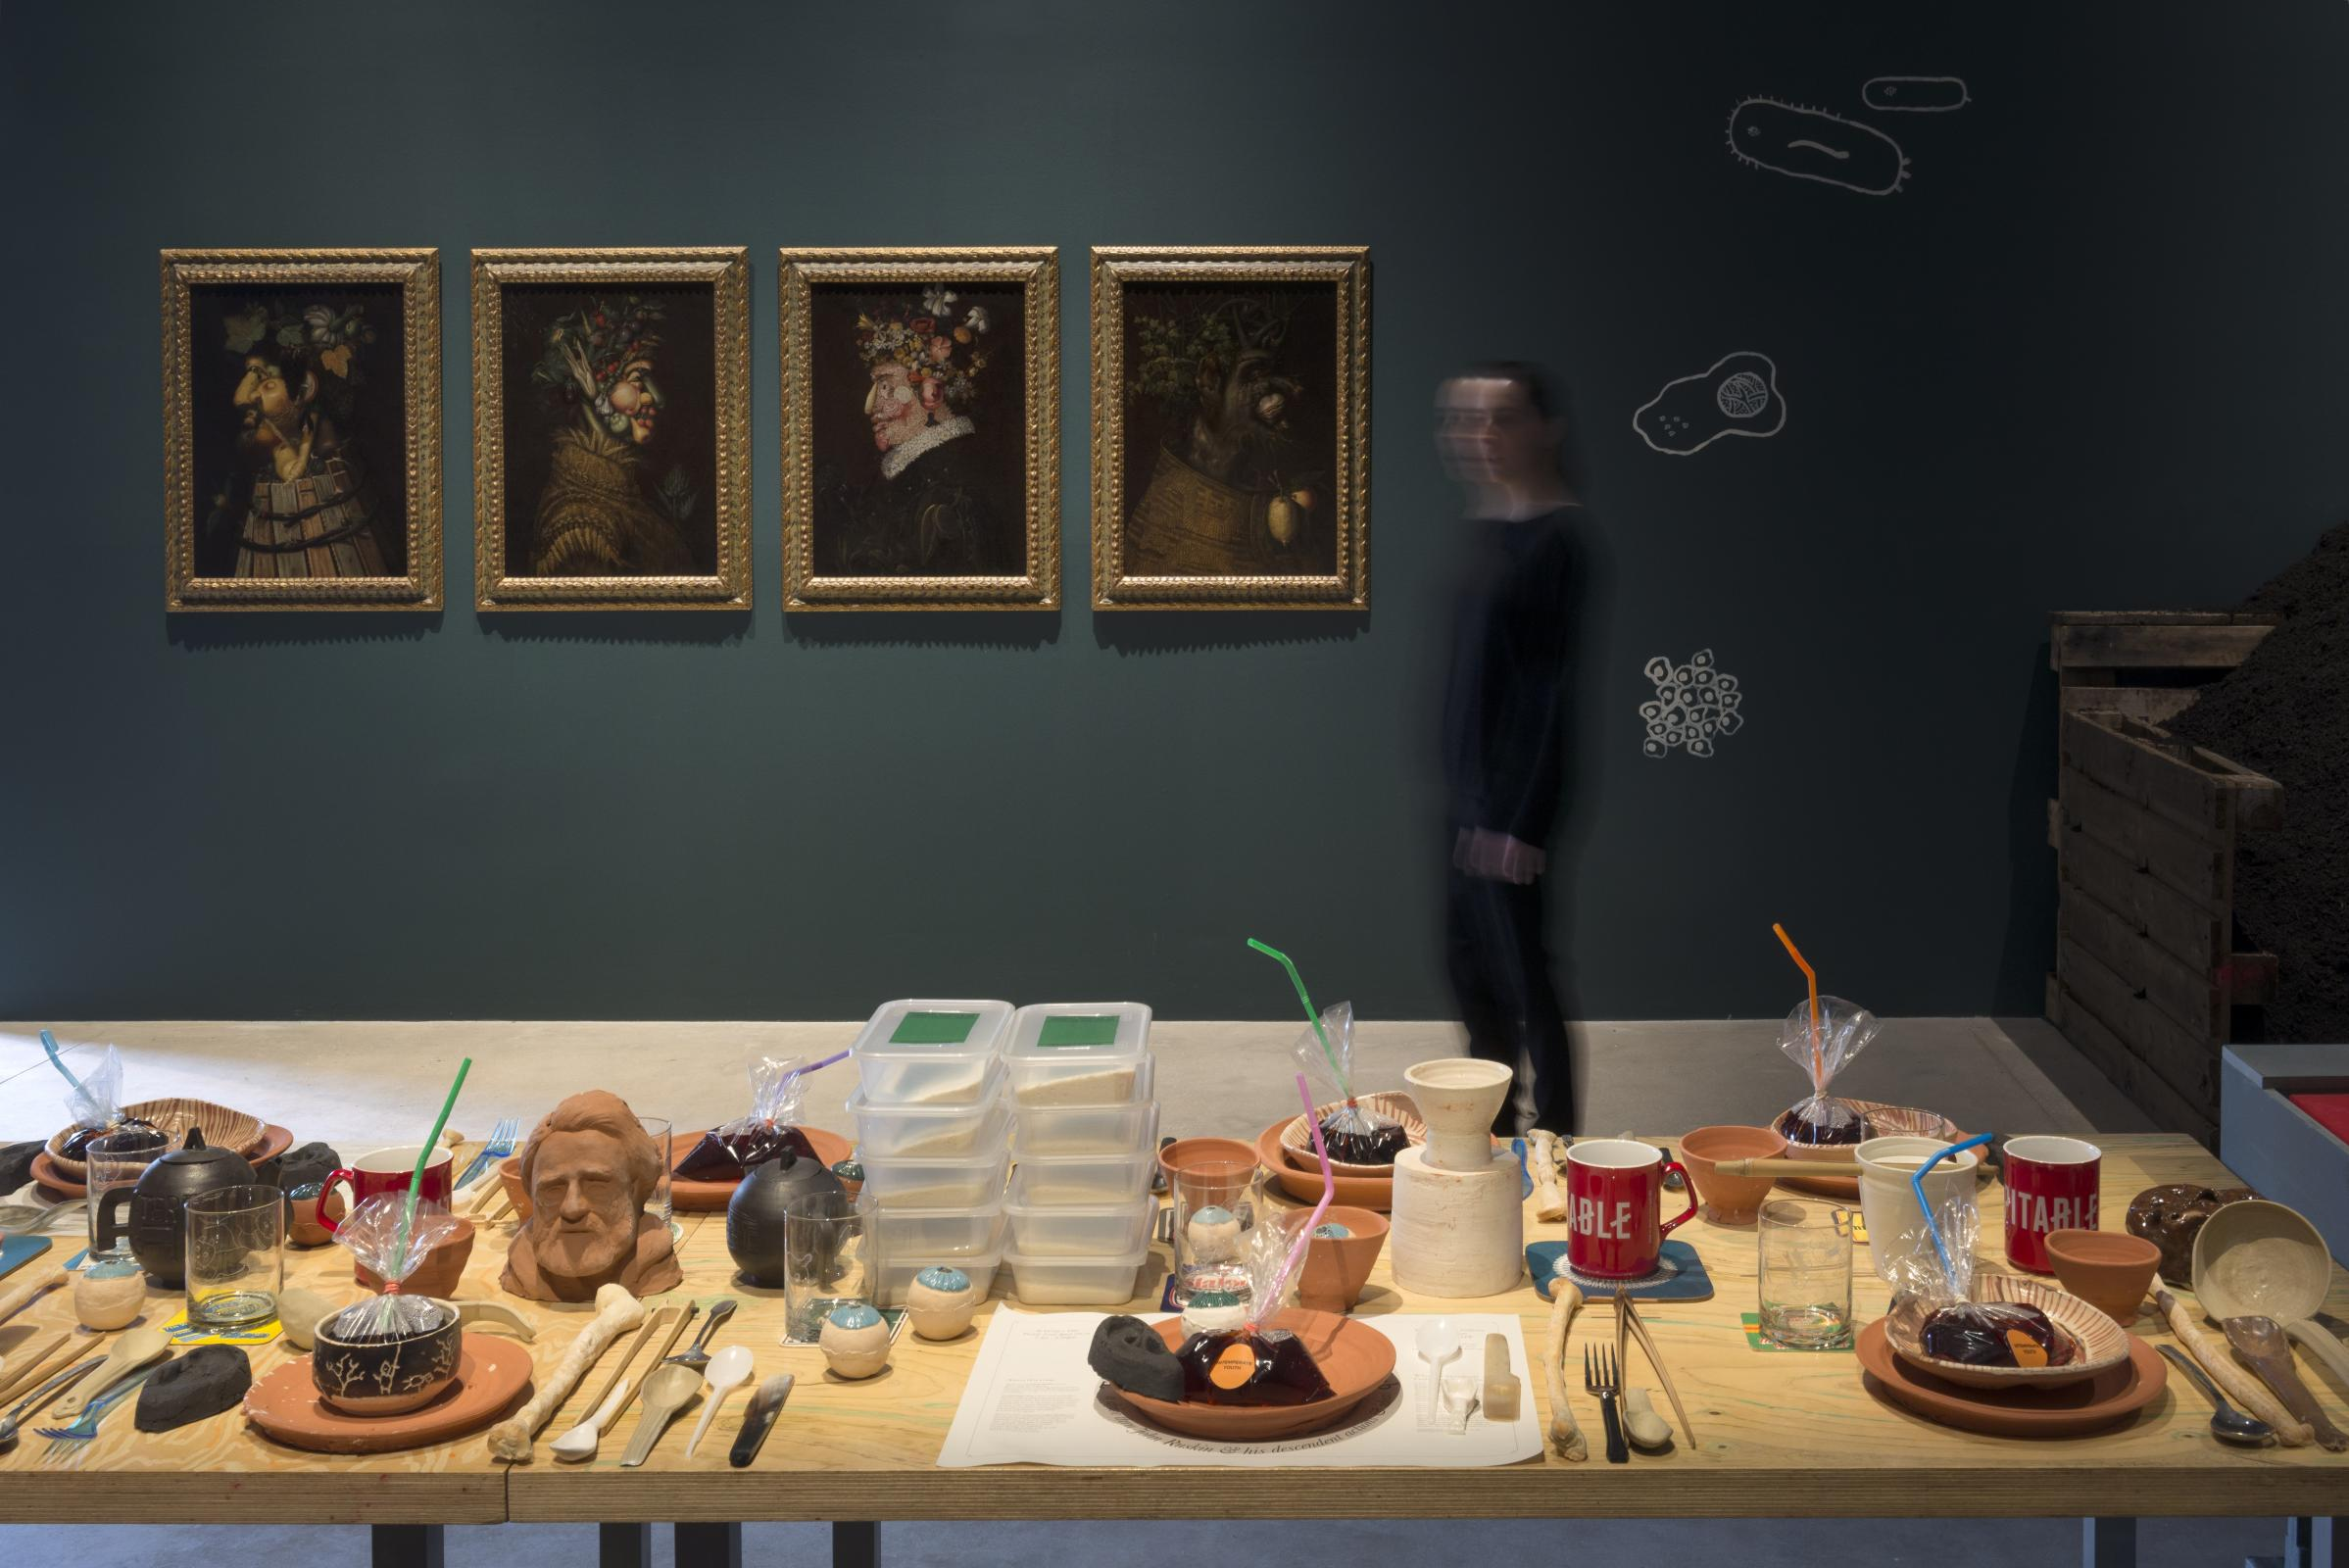 Installation view featuring paintings by Giuseppe Arcimboldo